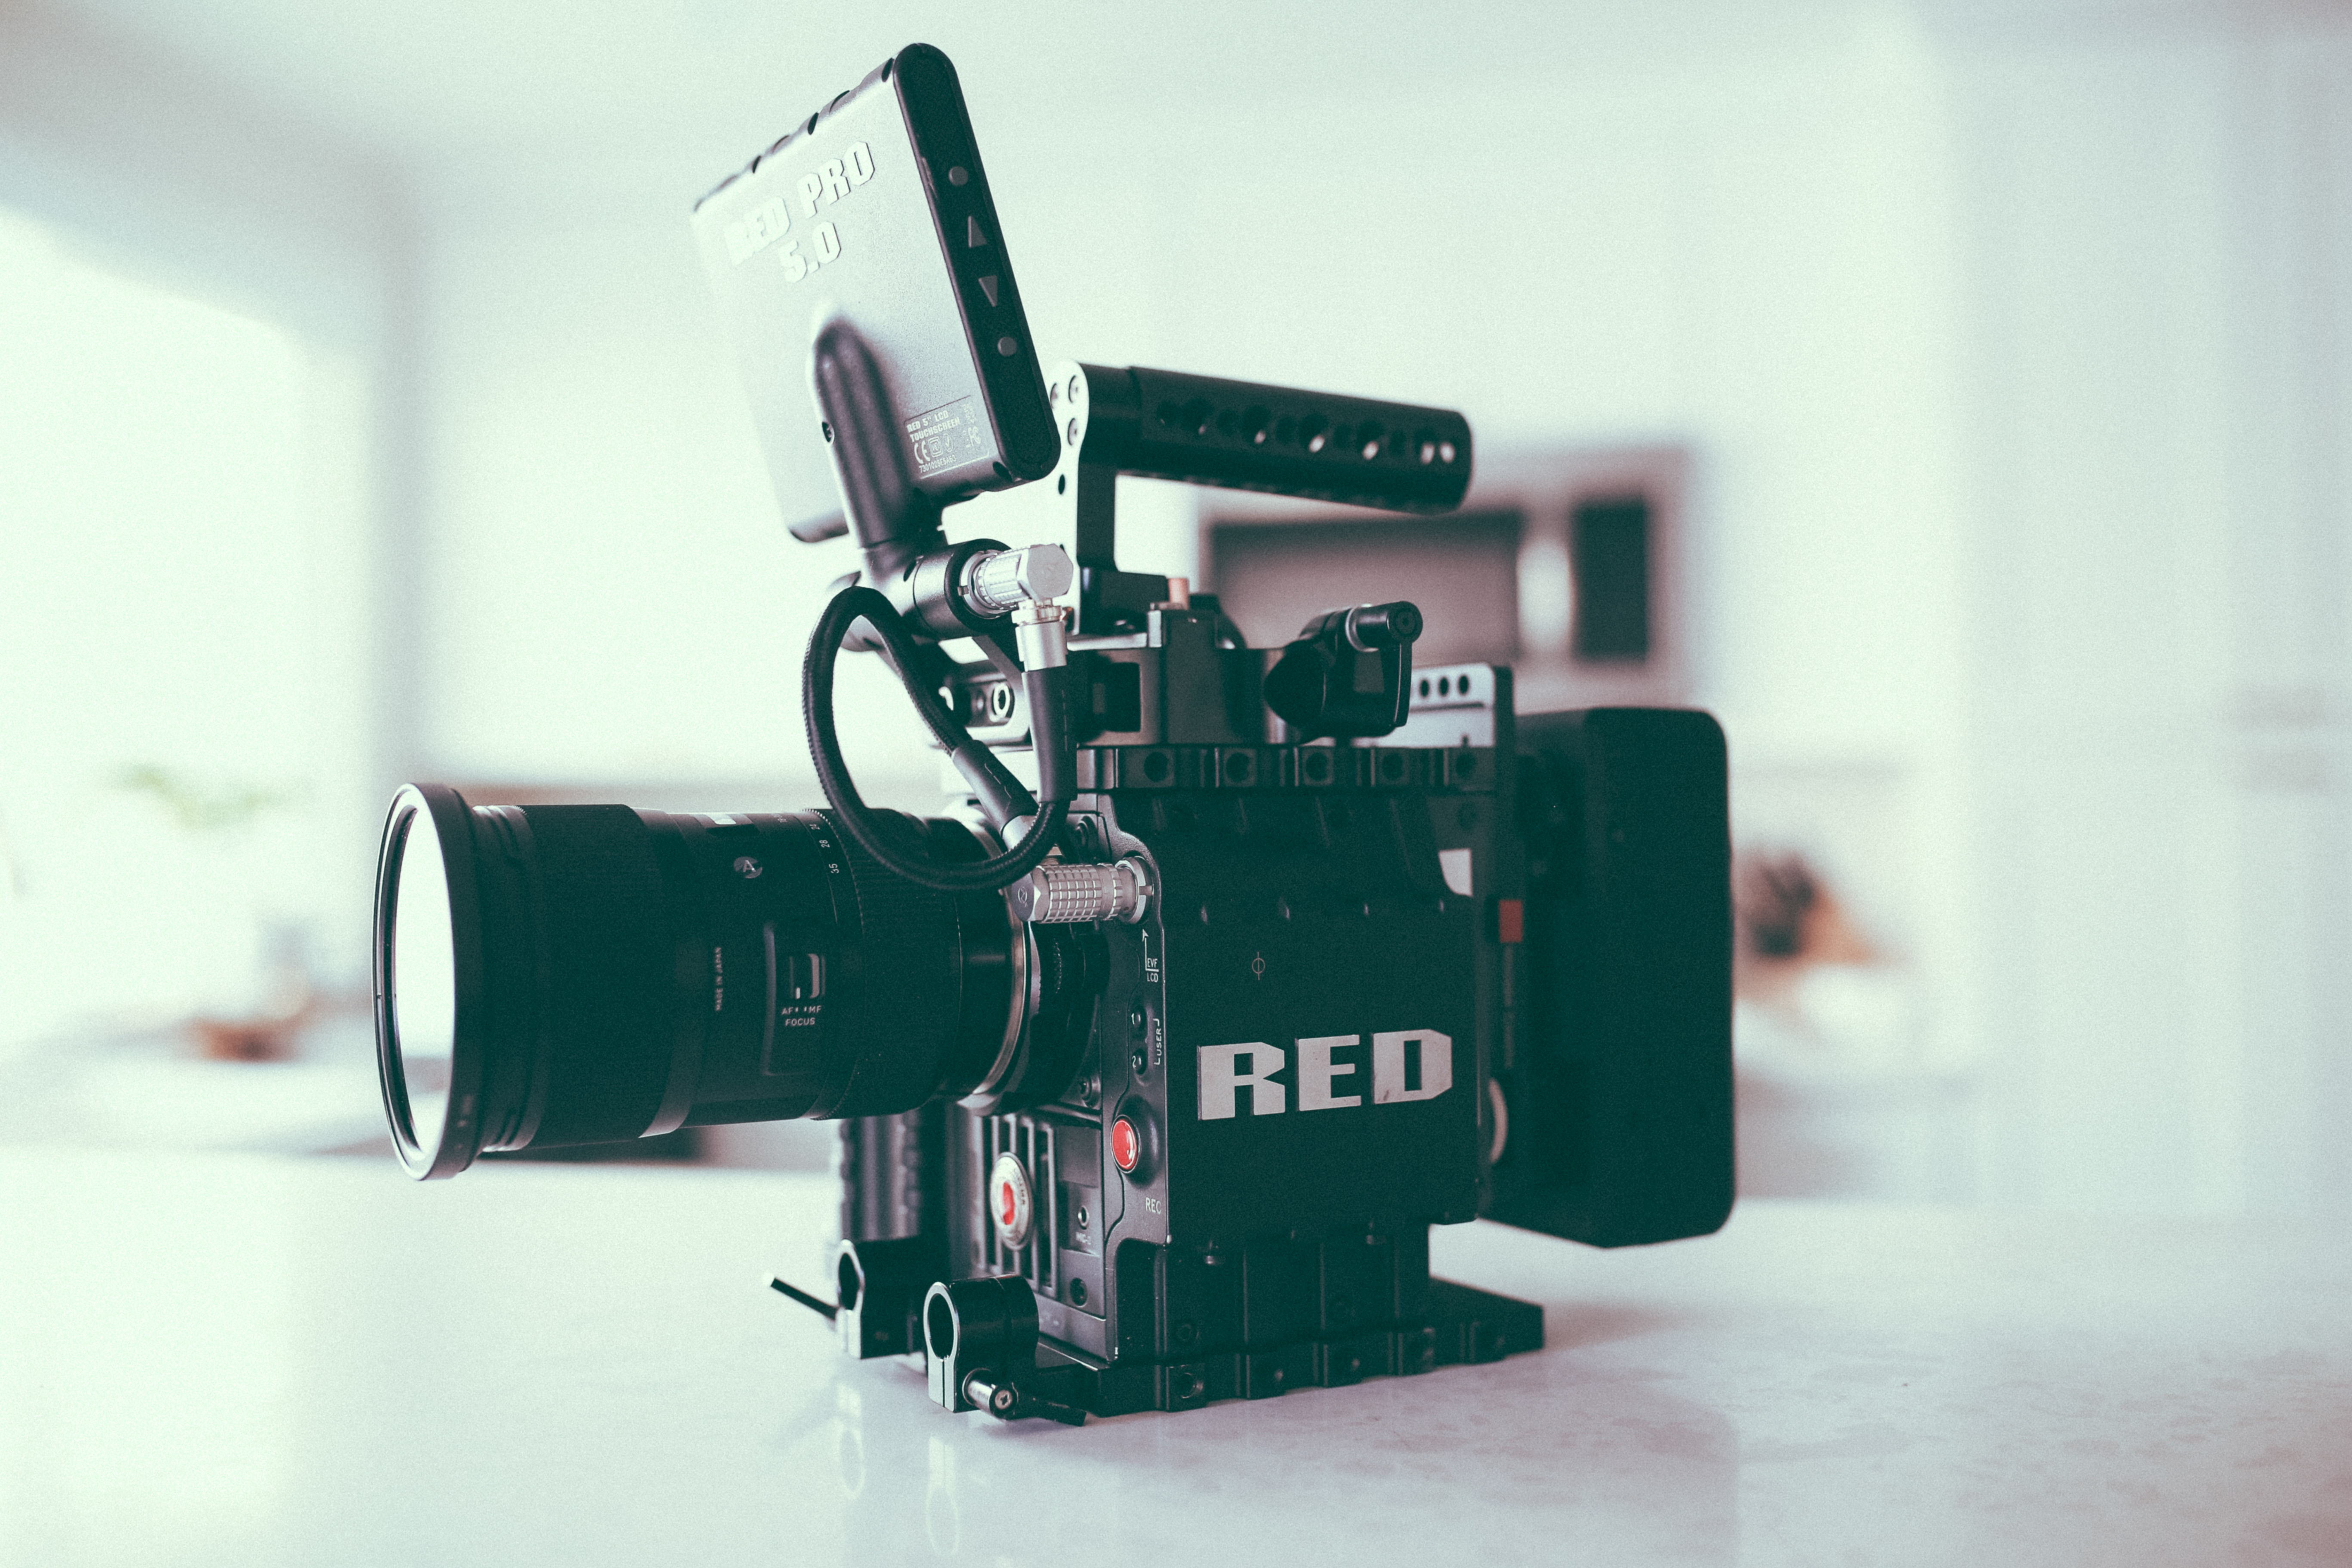 black red video recorder on white surface